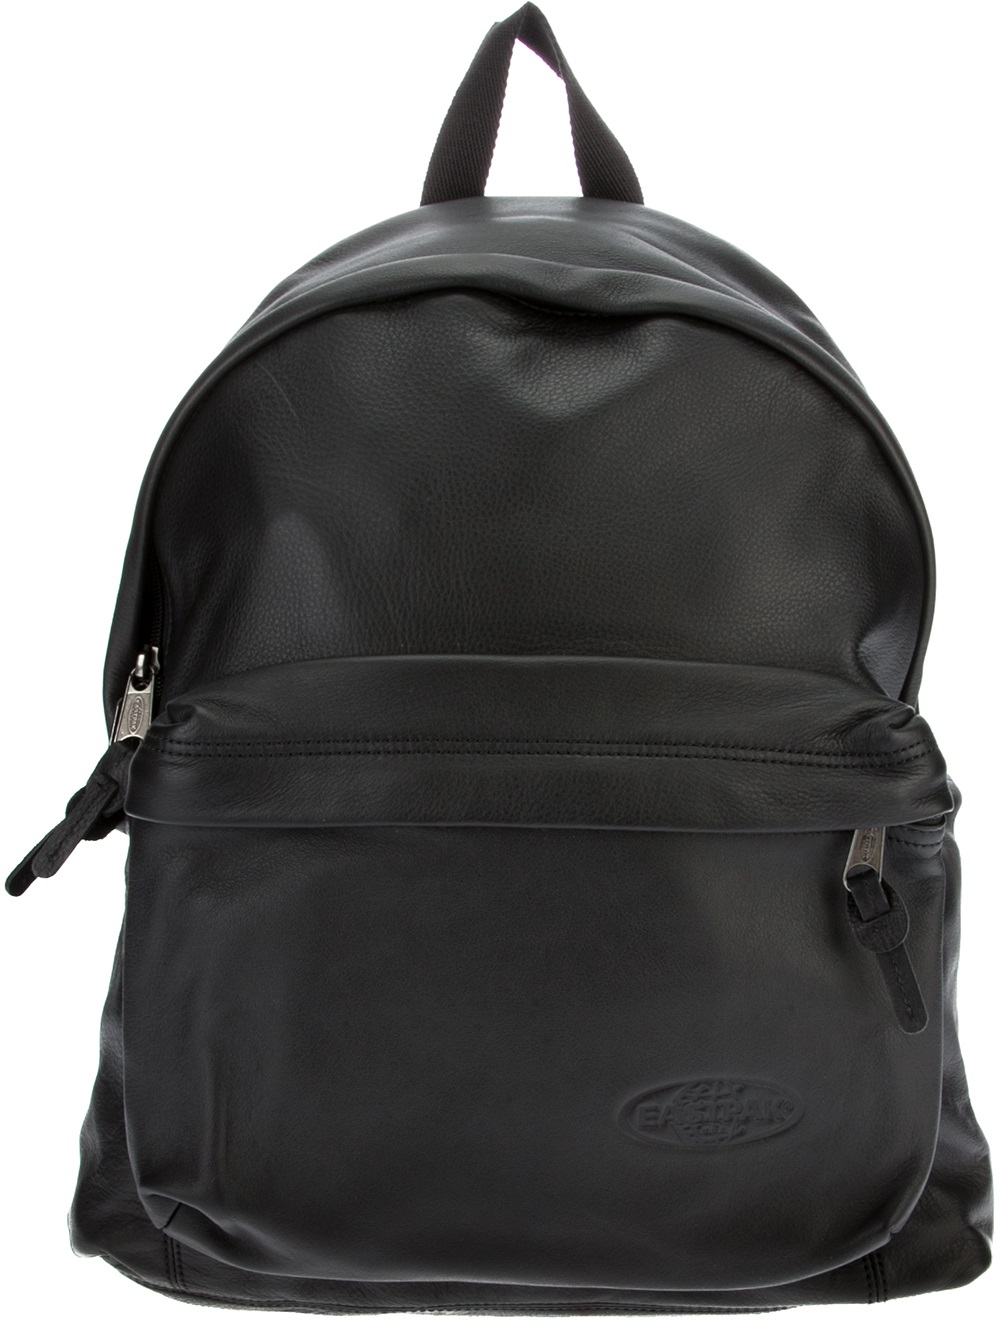 Eastpak Classic Leather Backpack in Black for Men